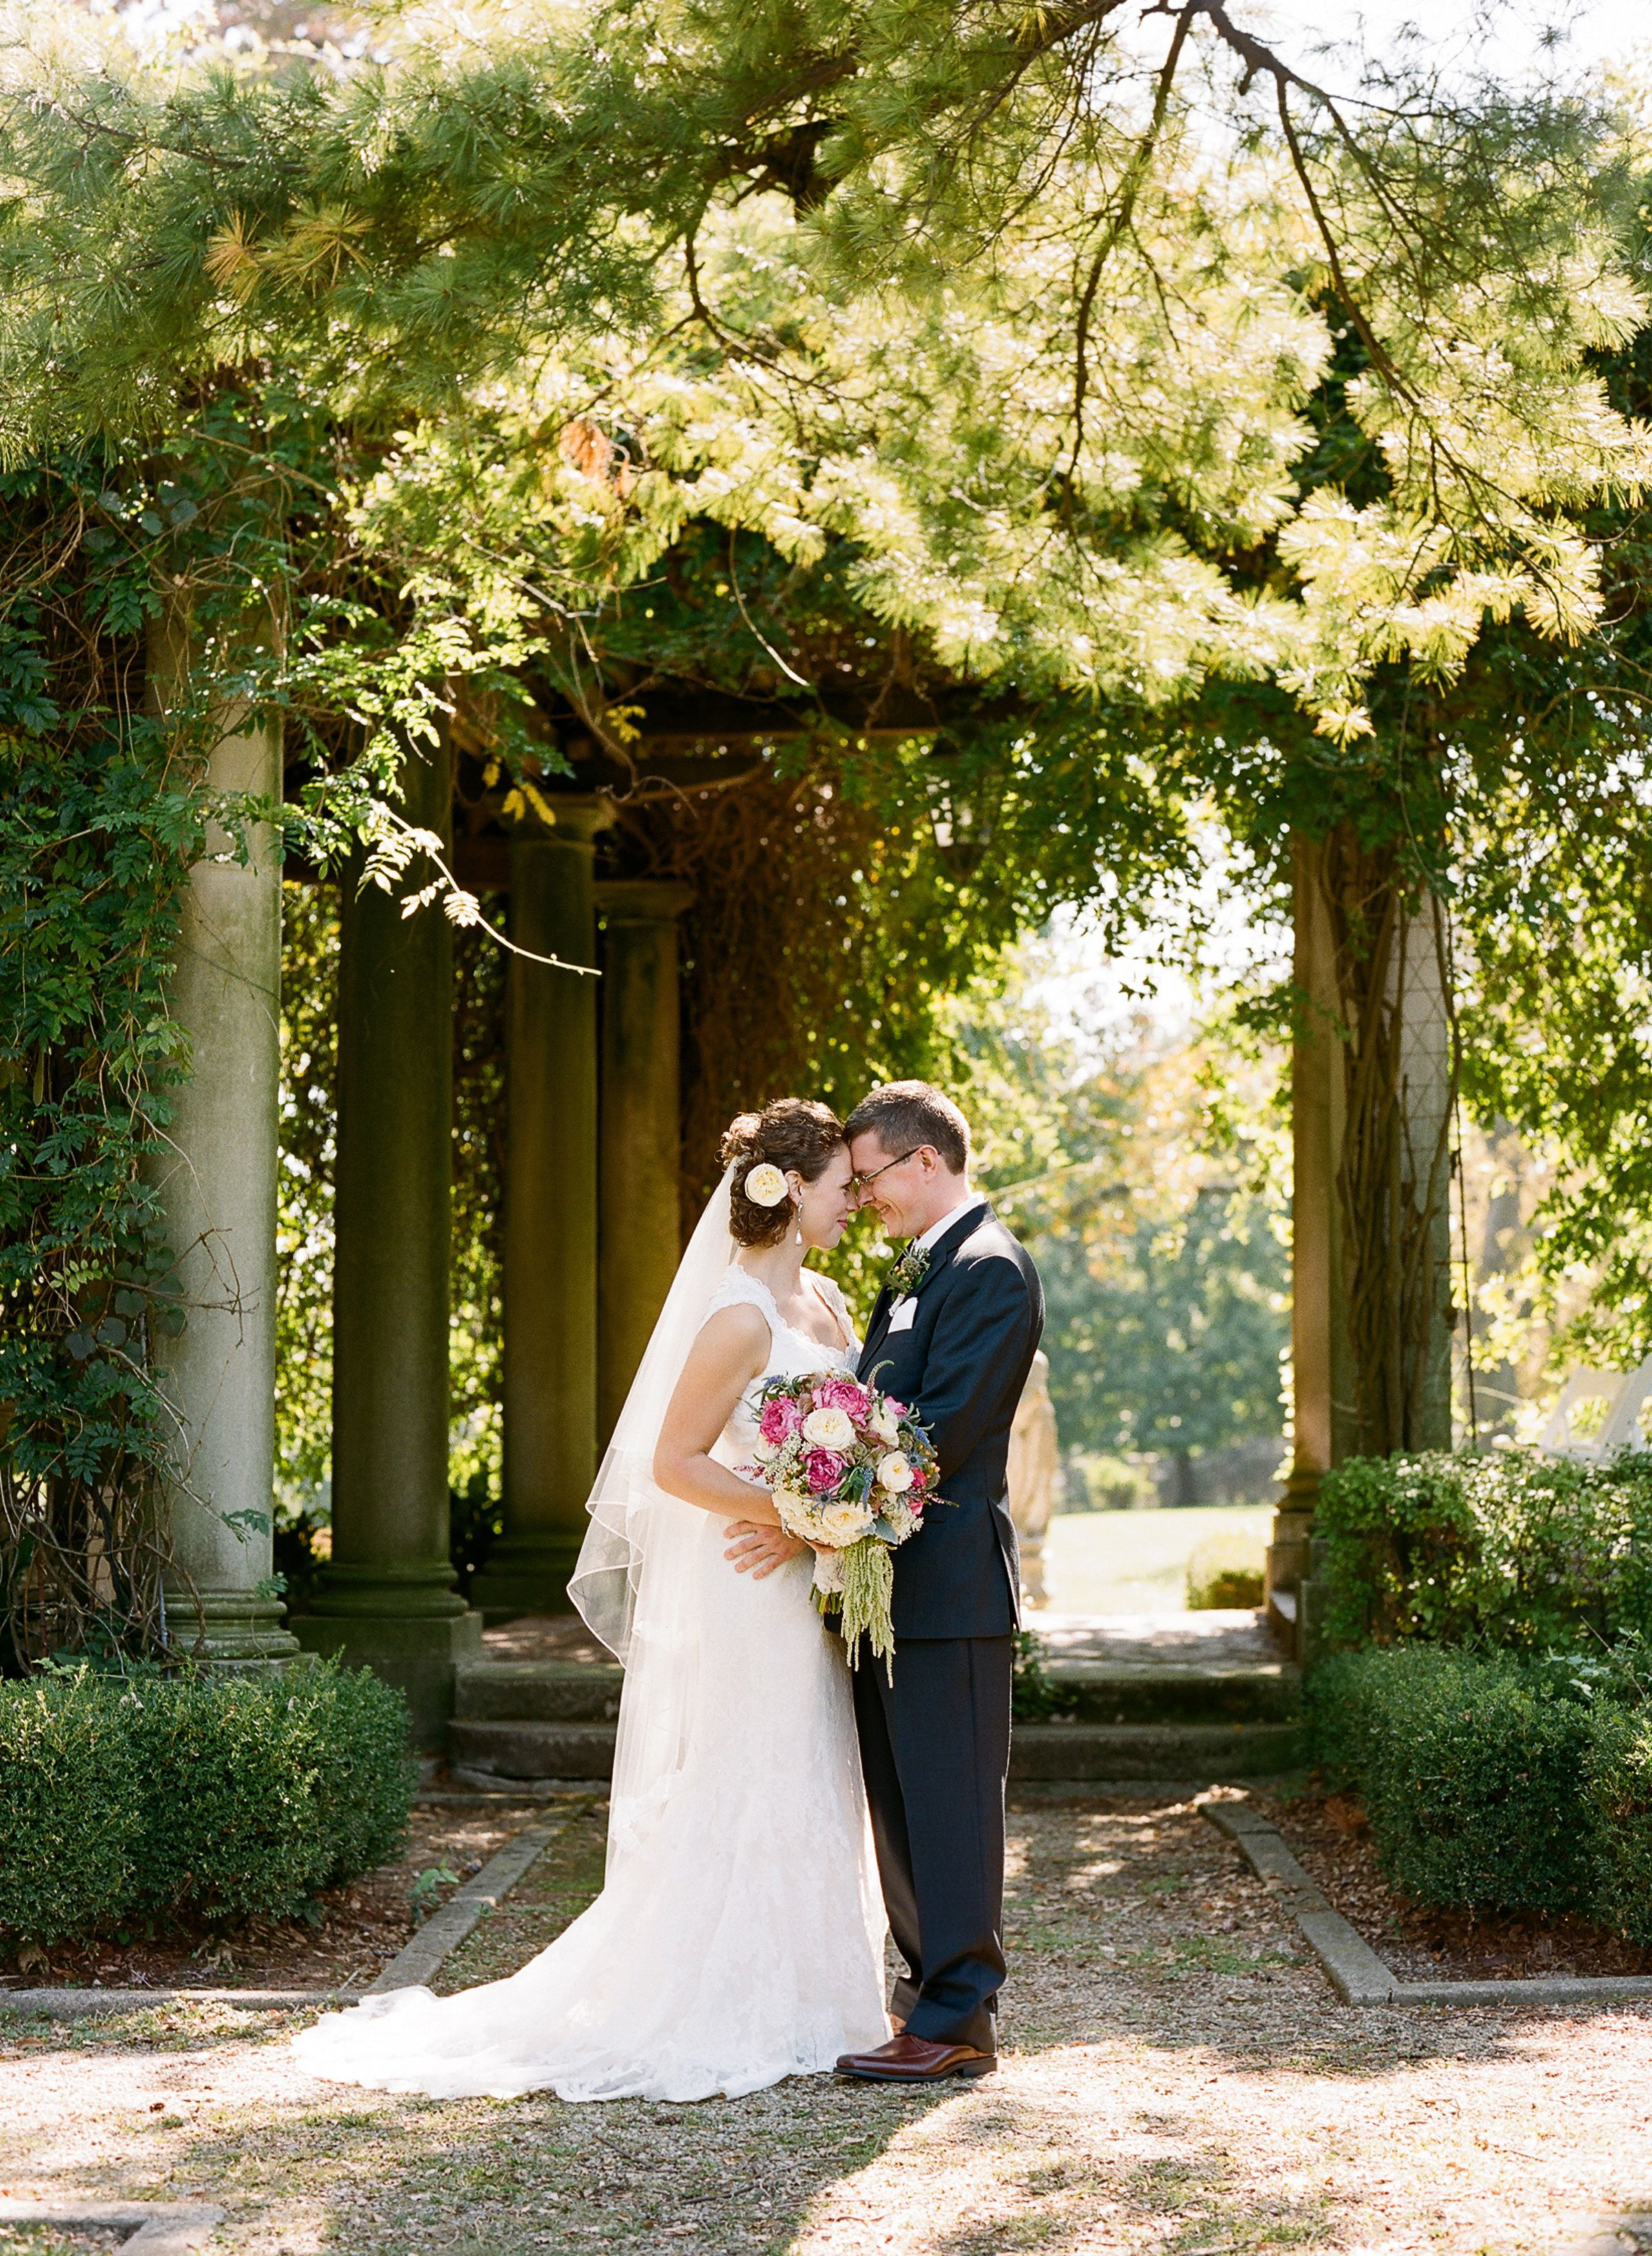 An Elegant Vintage Wedding At Laurel Court In Cincinnati Ohio